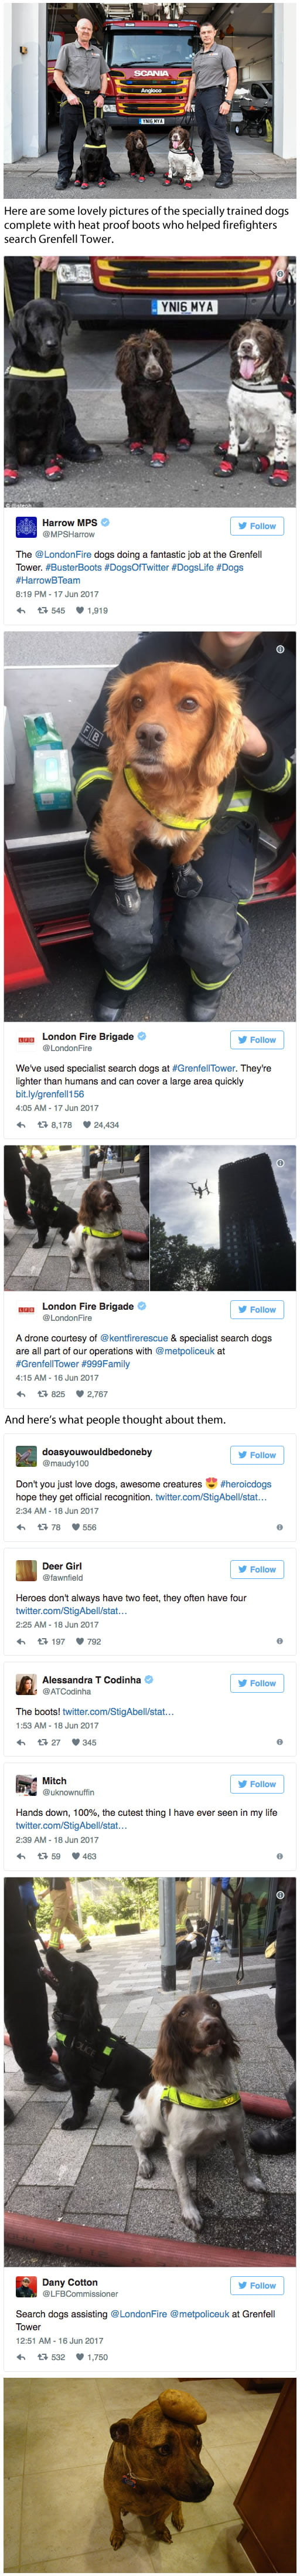 Hero dogs who helped during the Grenfell Tower rescue